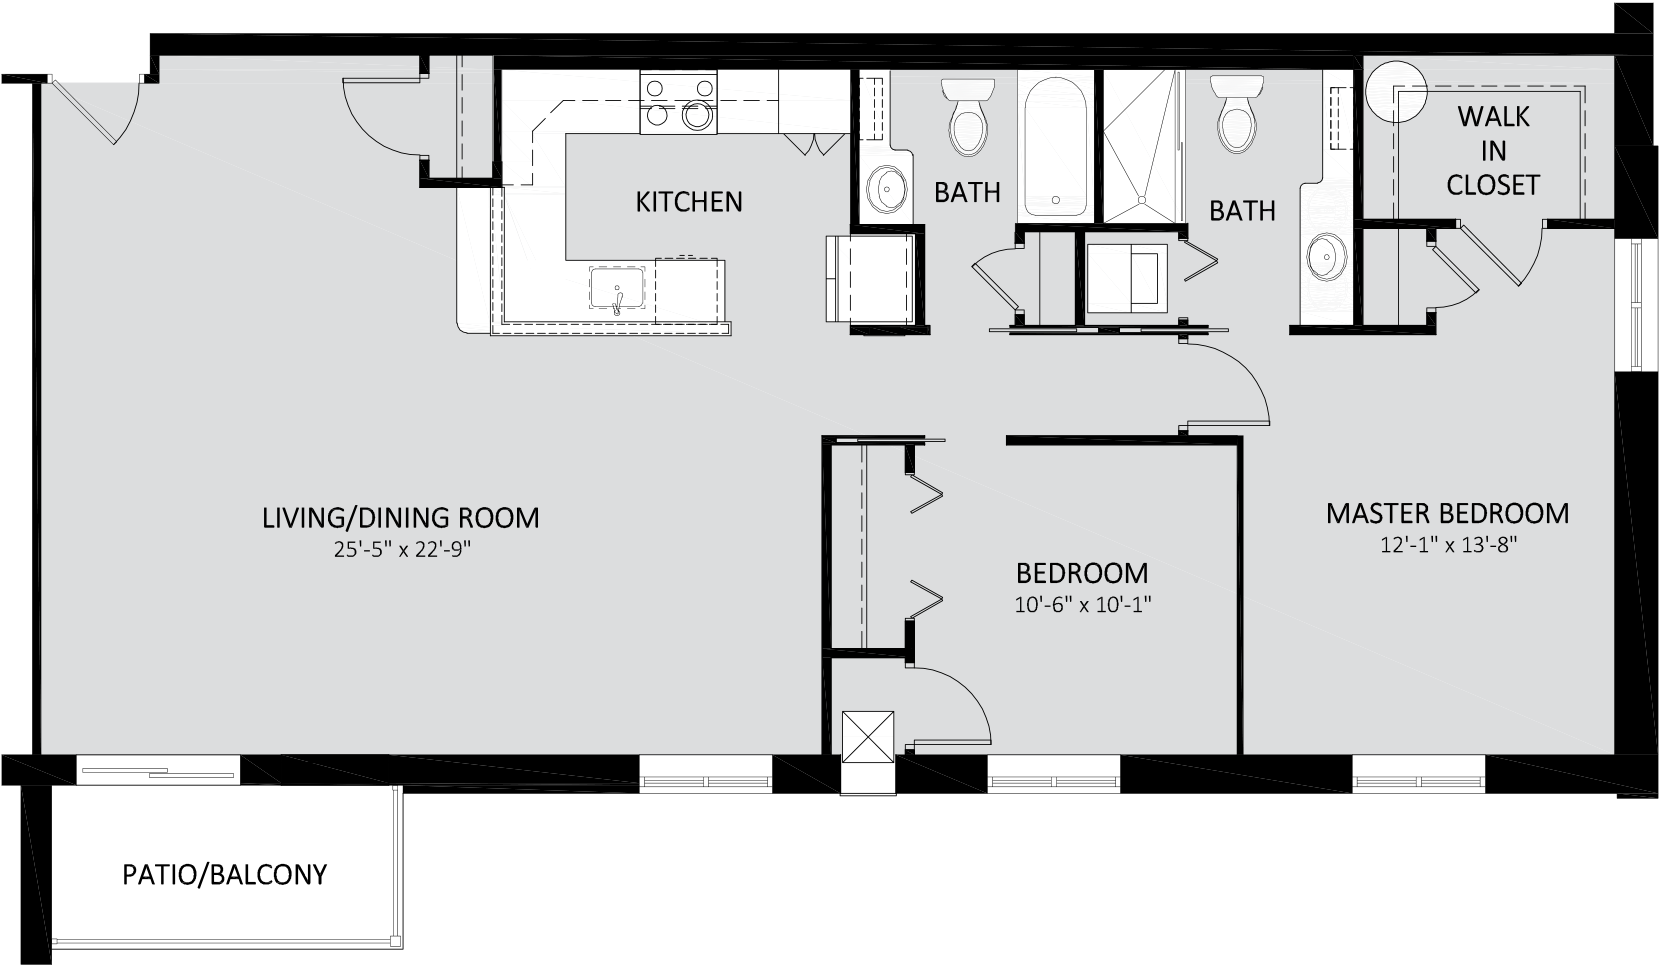 NFE Spirit Contemporary Two Bedroom-Great Room 1148 Sq Ft.png